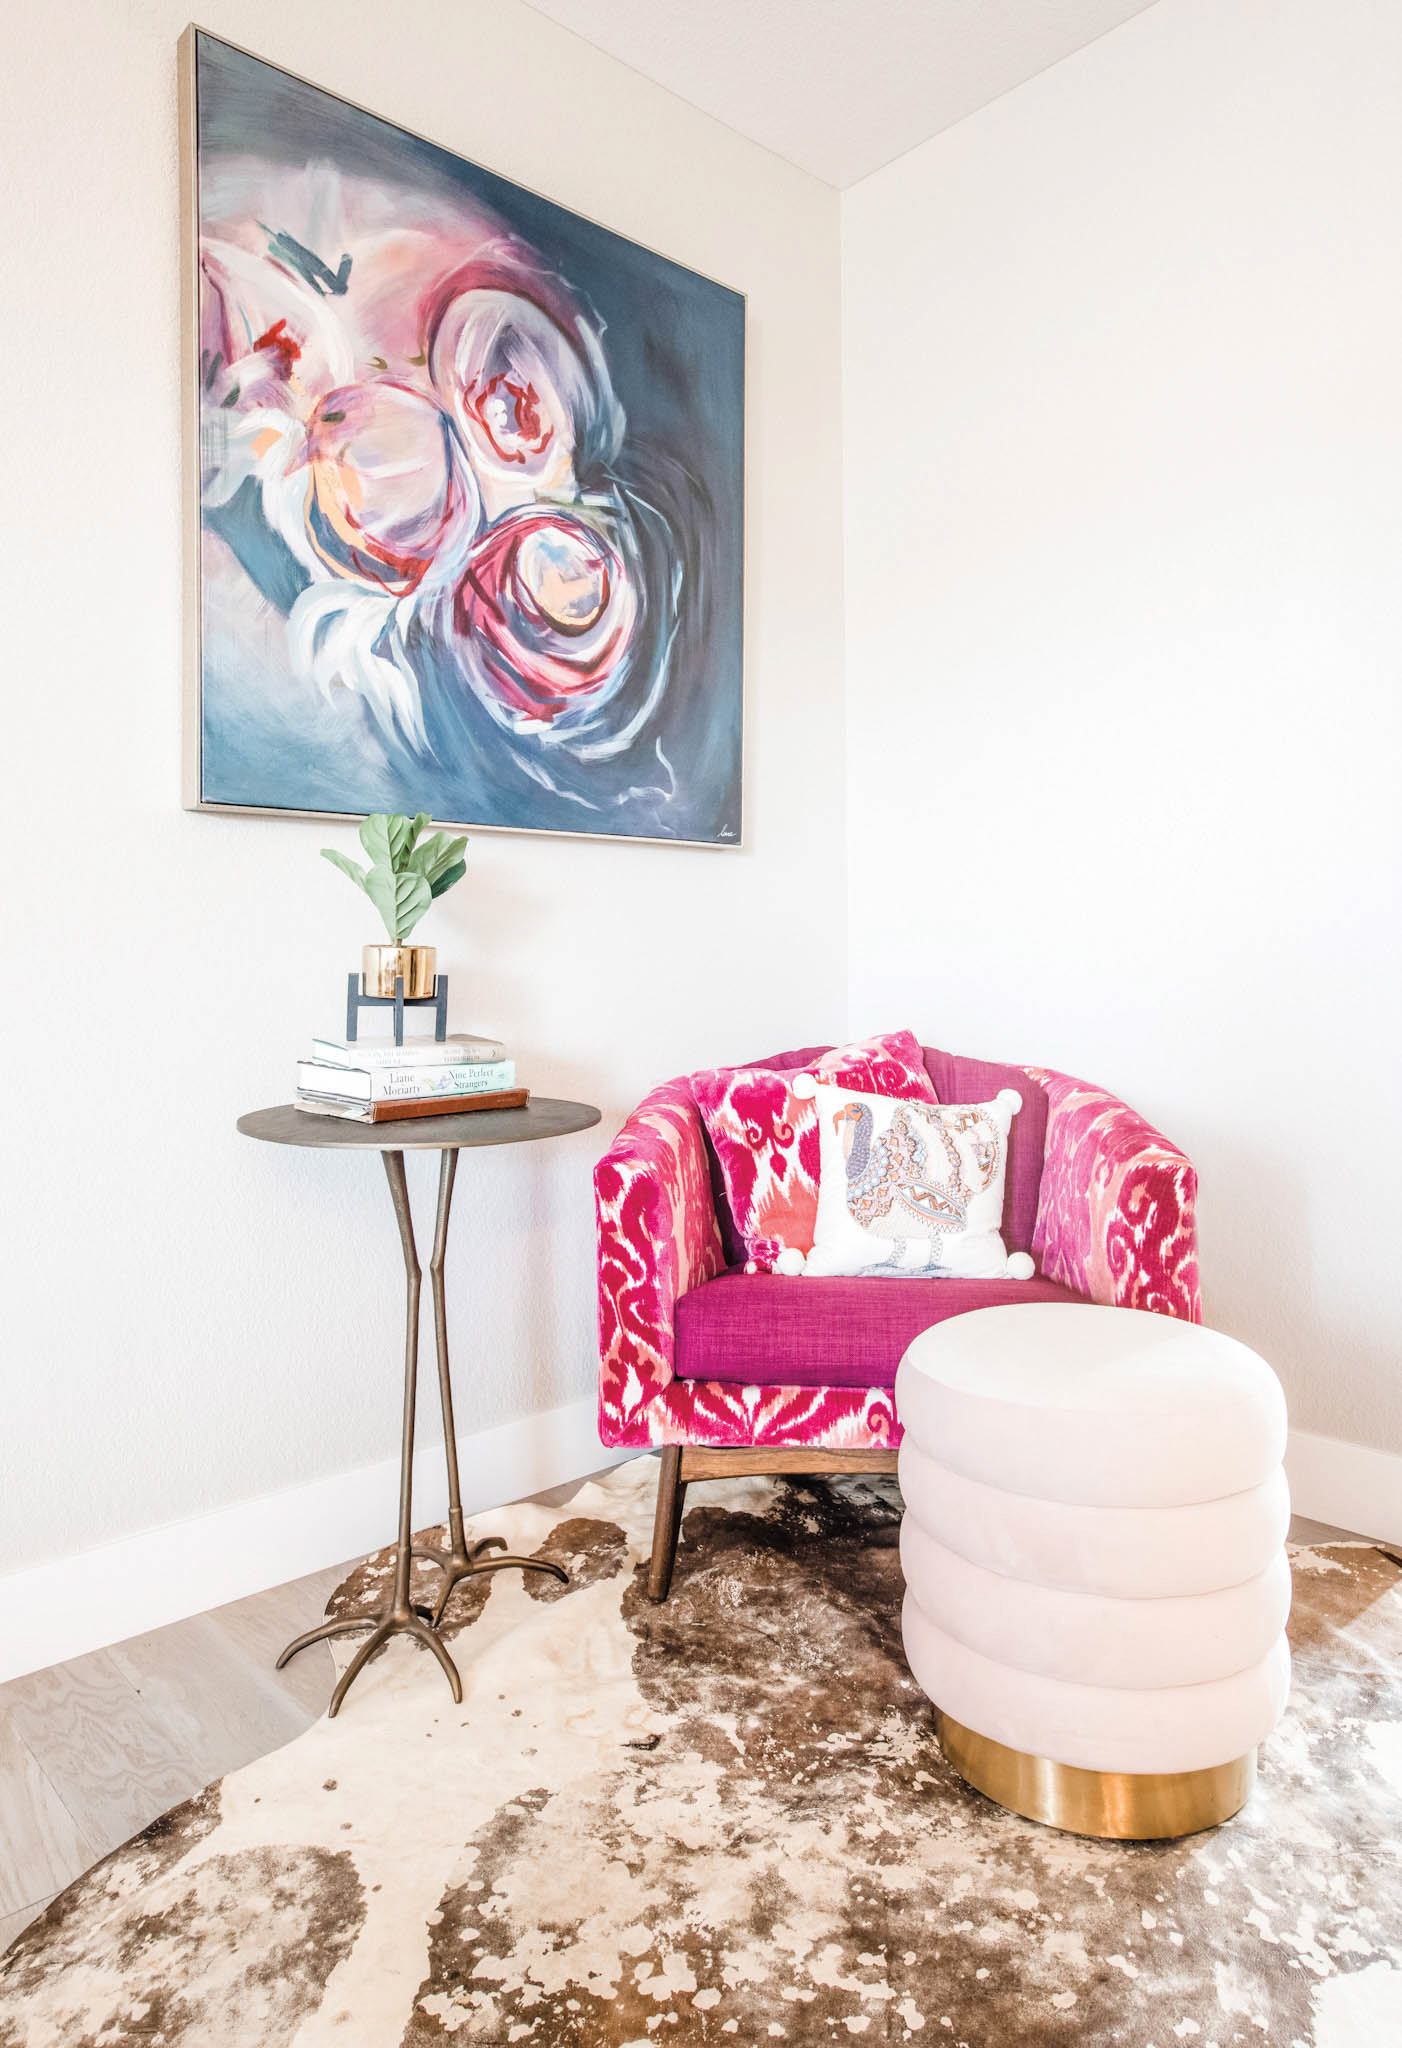 vignette of pink floral chair and floral painting